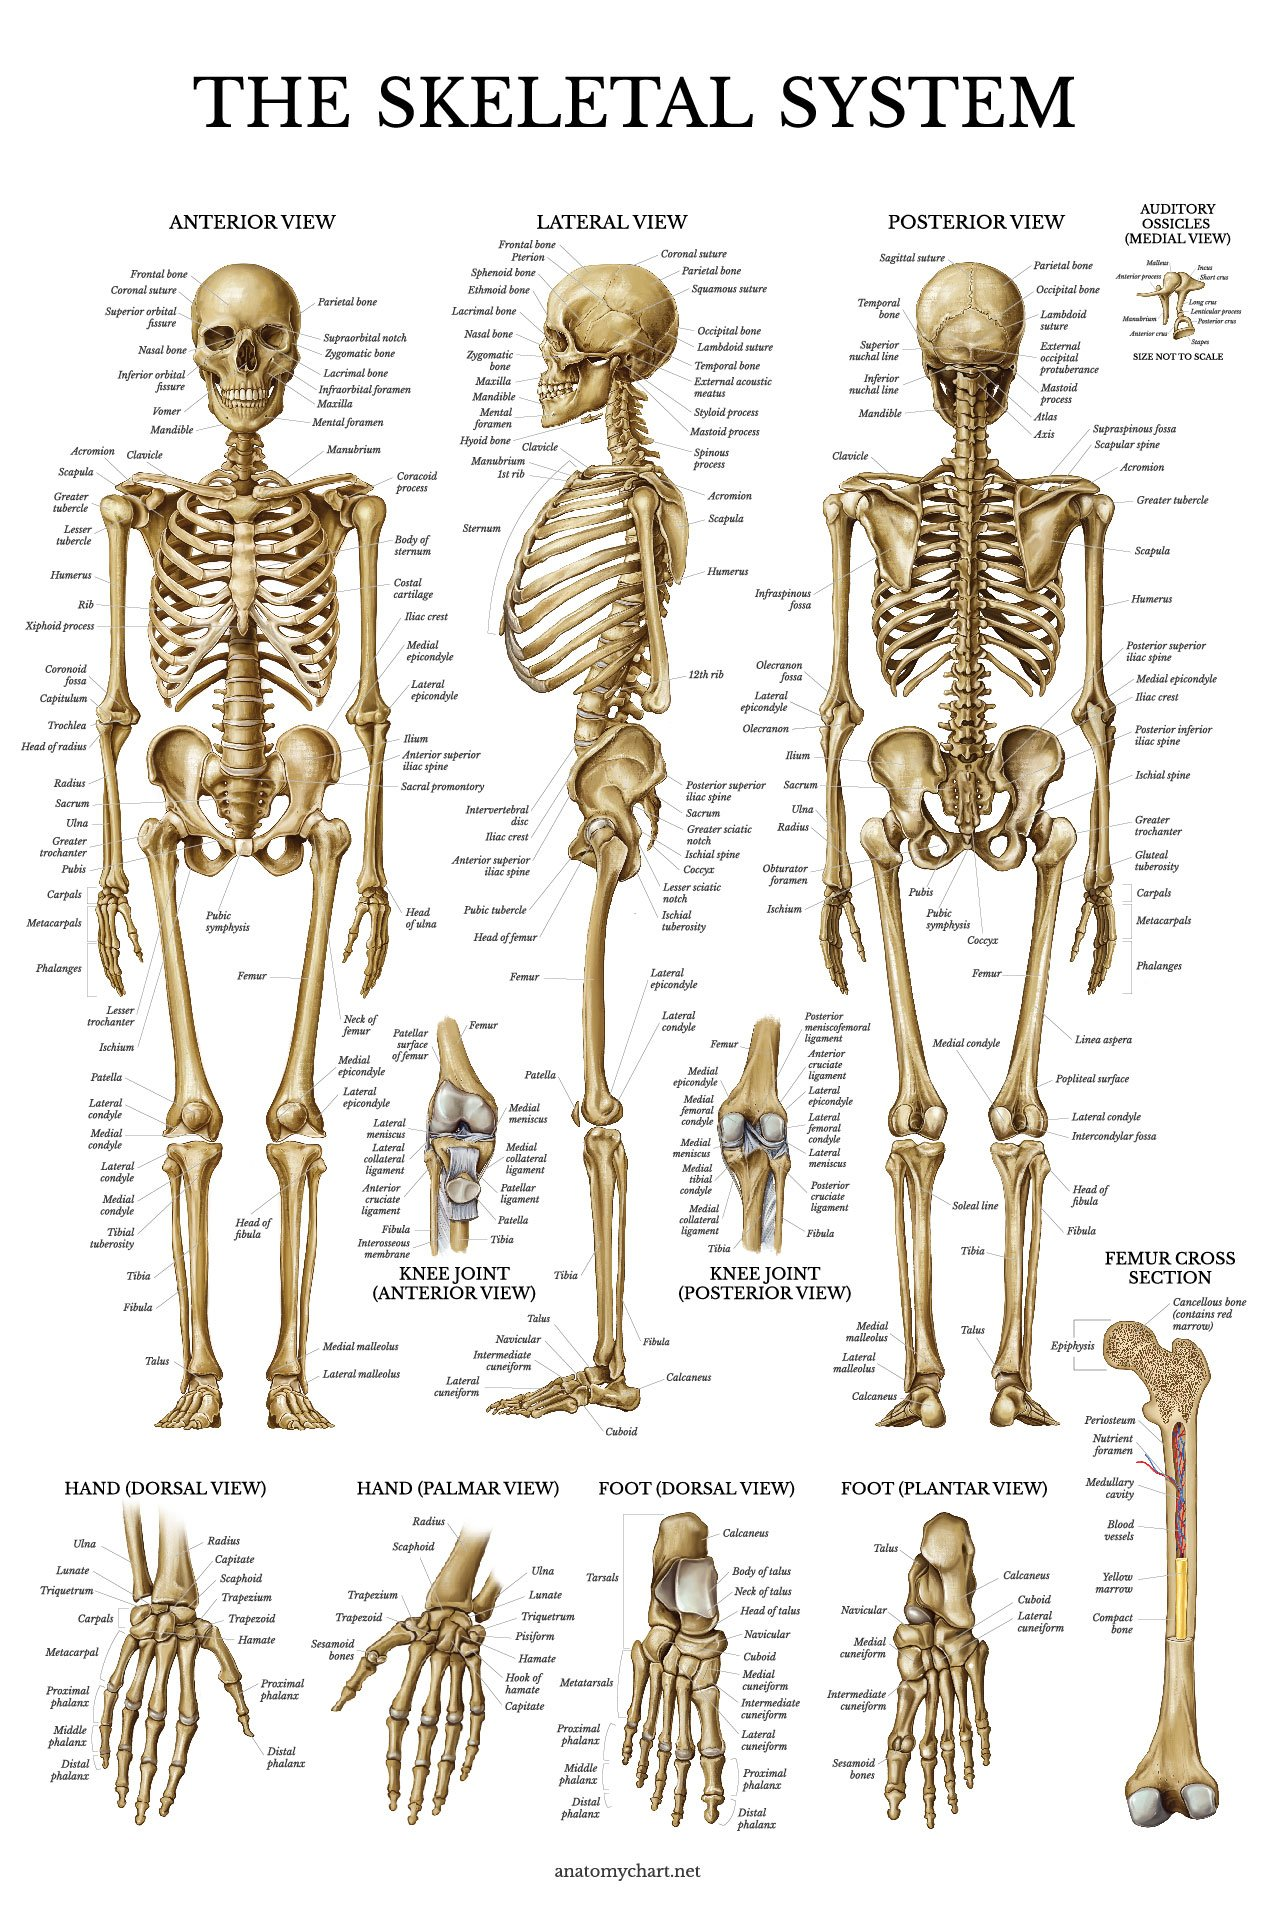 Best anatomy posters for walls | Amazon.com